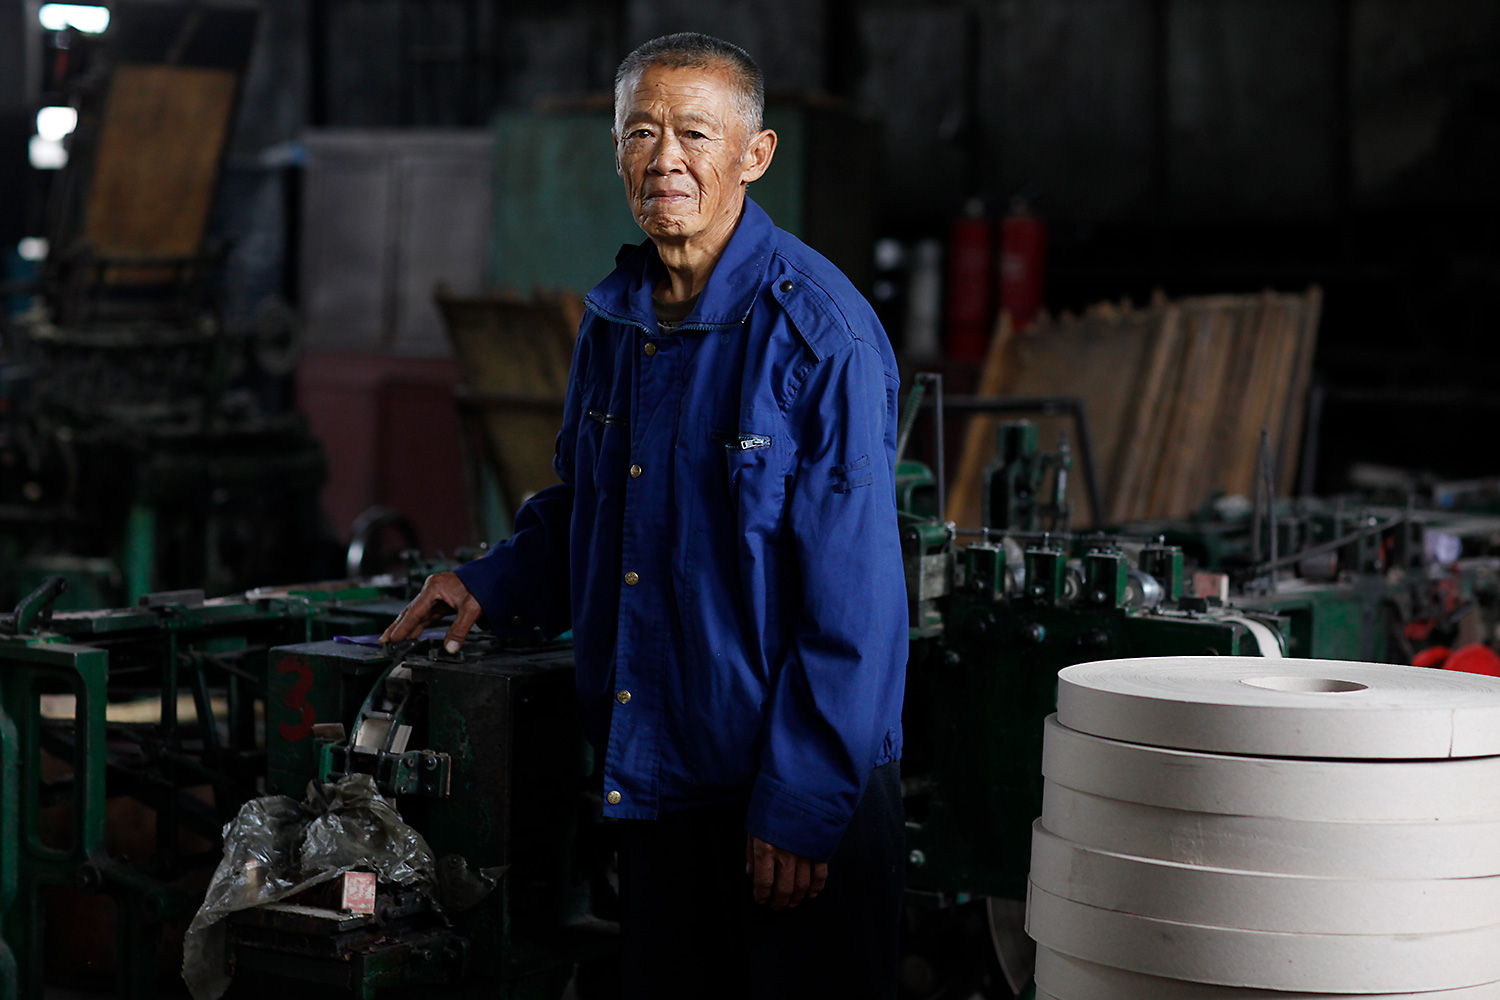 Lu Guangshun began working in the match factory in March 1968. His job was the envy of others in town. Now 73, he says the factory's heyday was from 1987 to 1997.